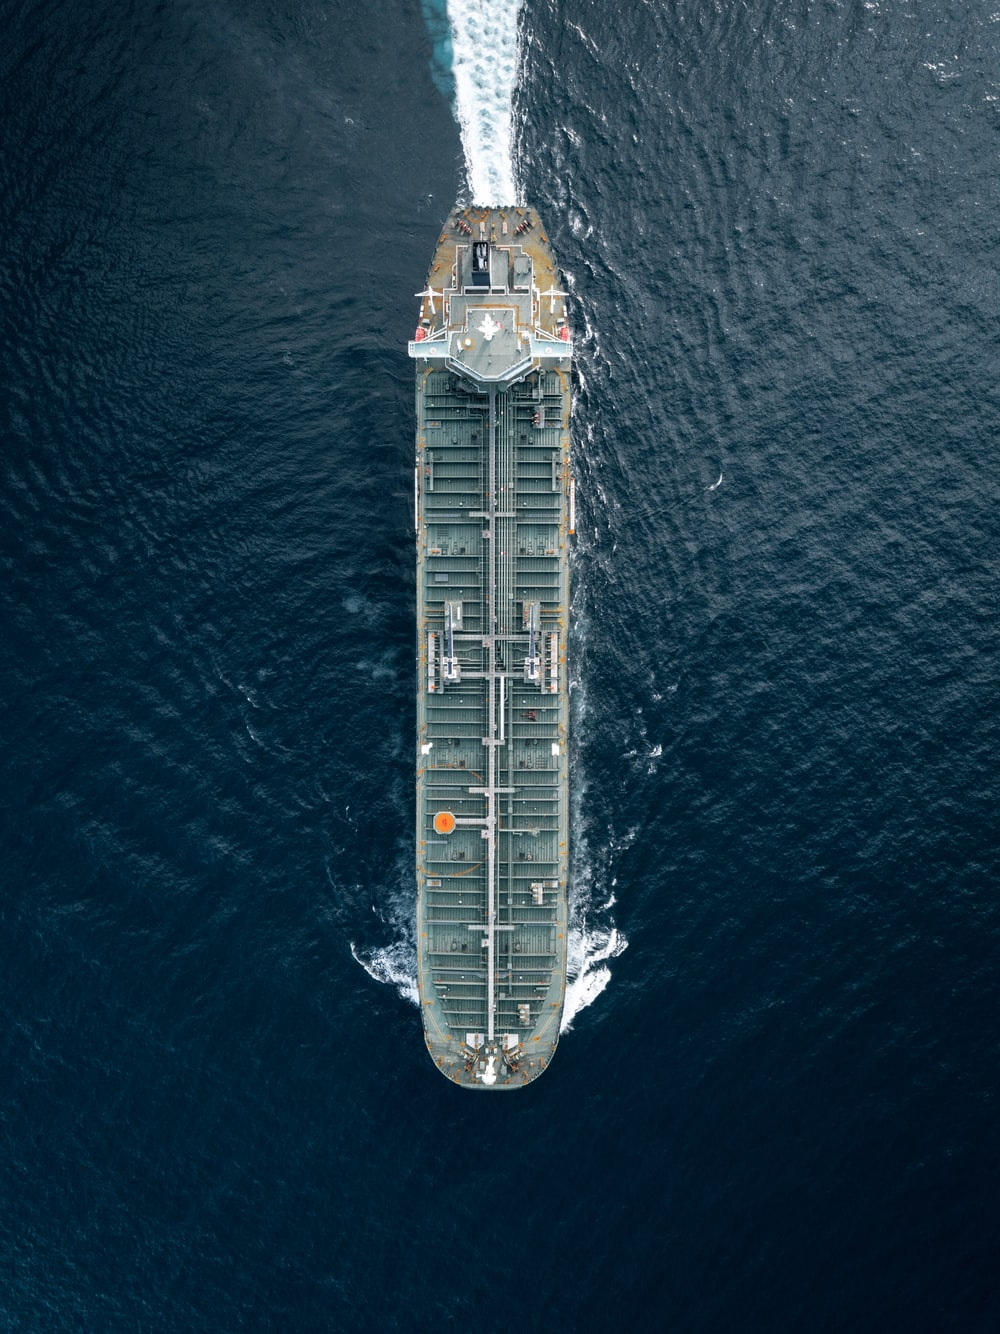 container ship cruising on the middle of the sea